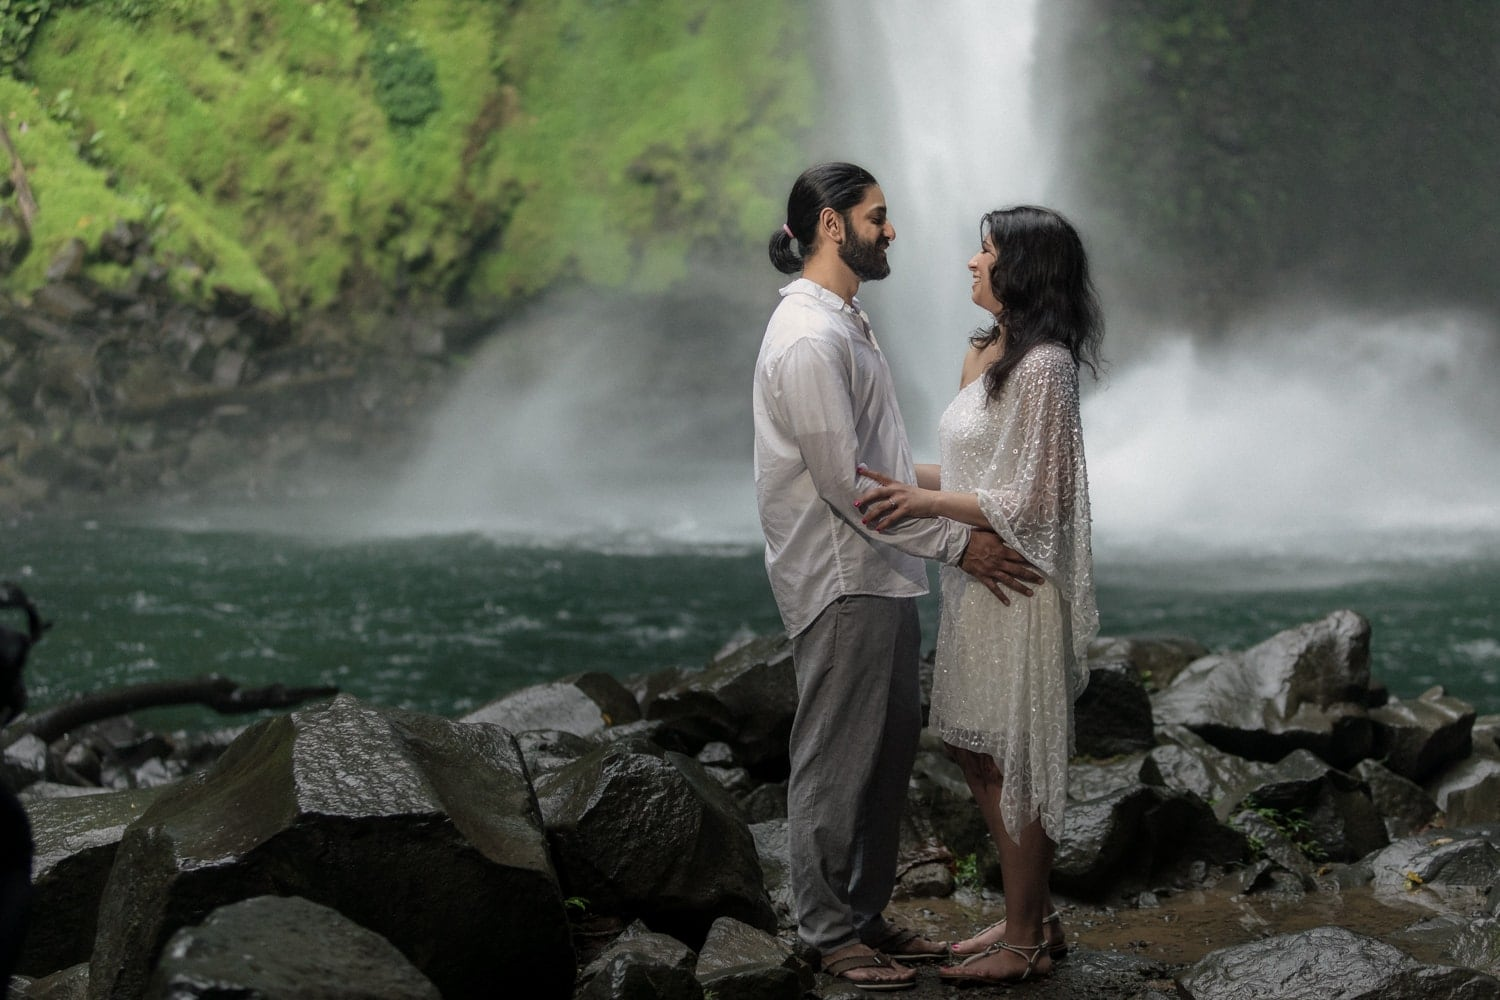 Amberene-Farhan-Engagement-Photos-La-Fortuna-Waterfall-5.jpg